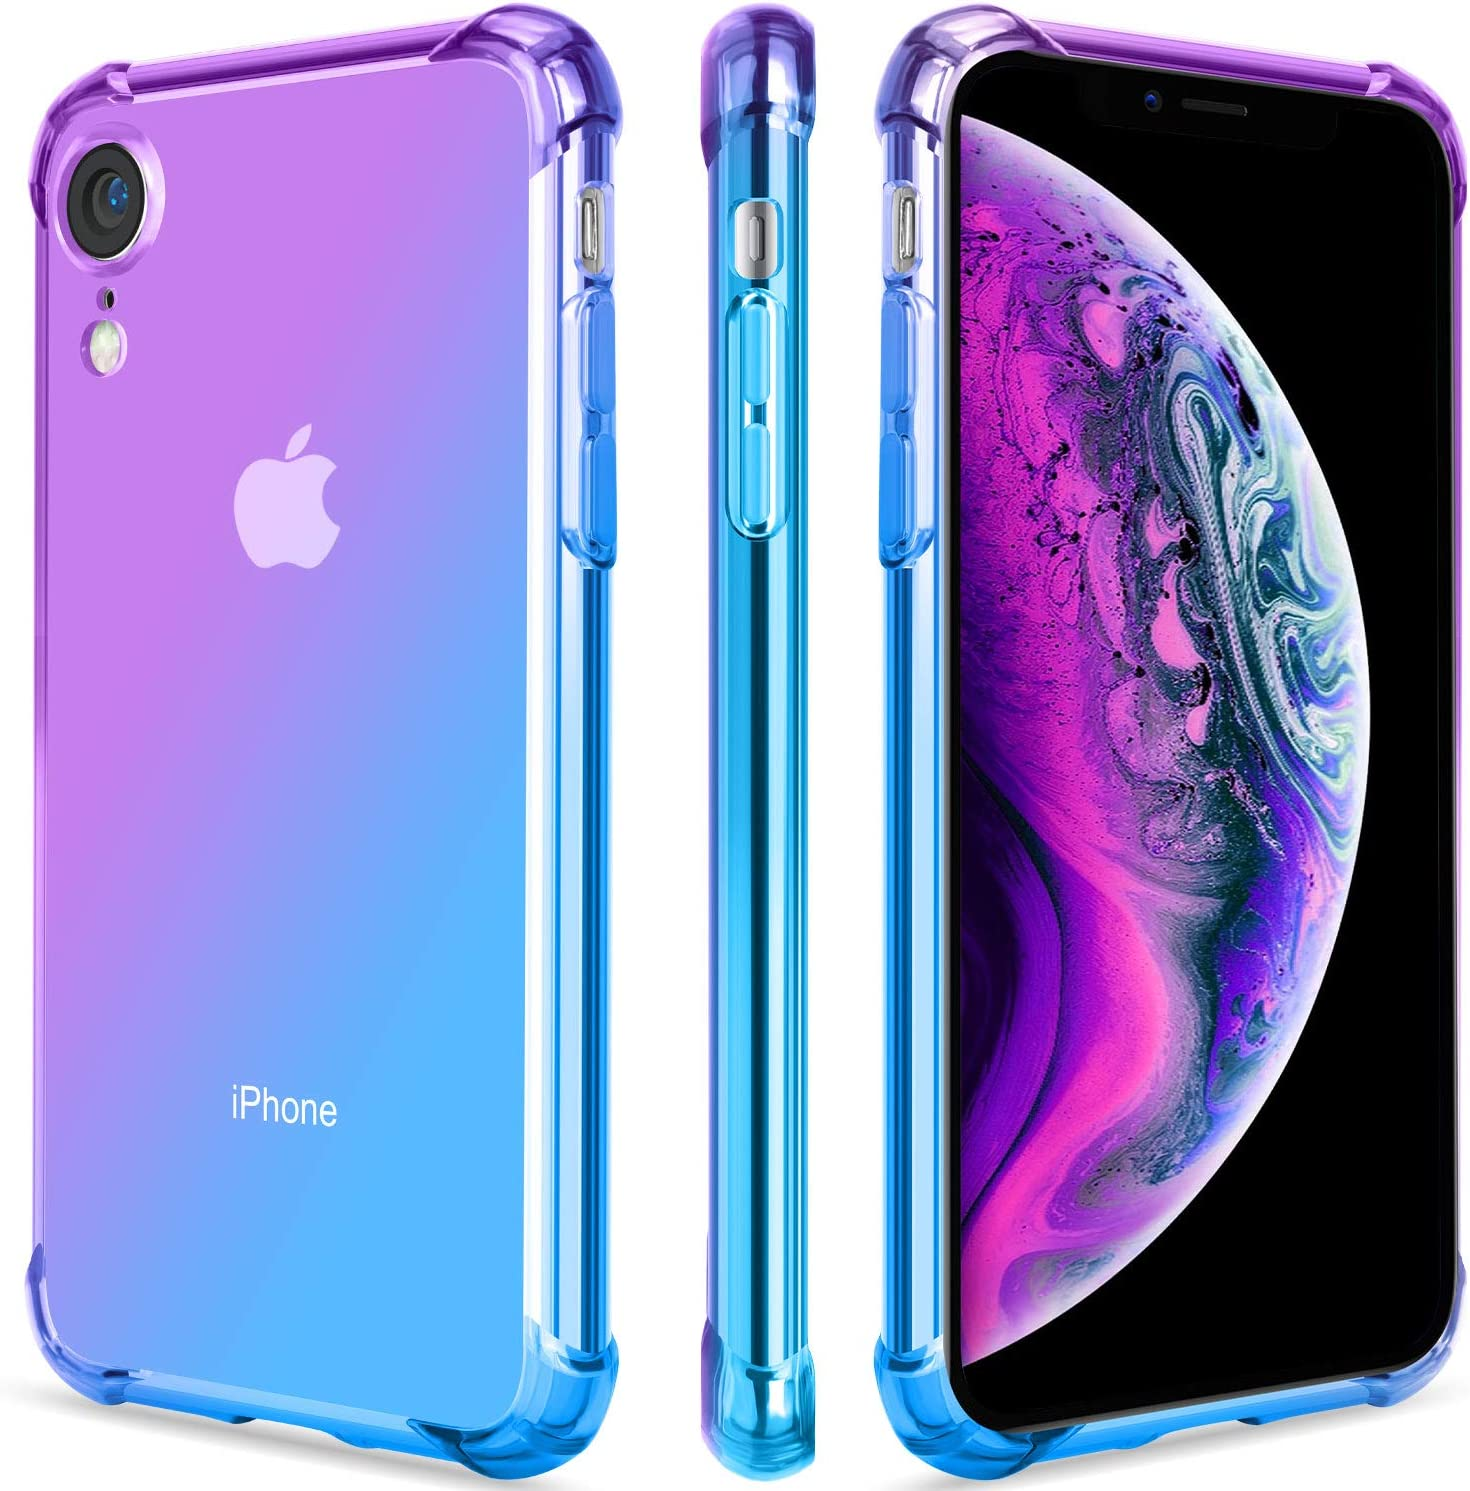 SALAWAT for iPhone Xr Case, Clear iPhone Xr Case Cute Gradient Slim Anti Scratch TPU Phone Case Cover Reinforced Corners Shockproof Protective Case for iPhone Xr 6.1inch (Purple Blue)